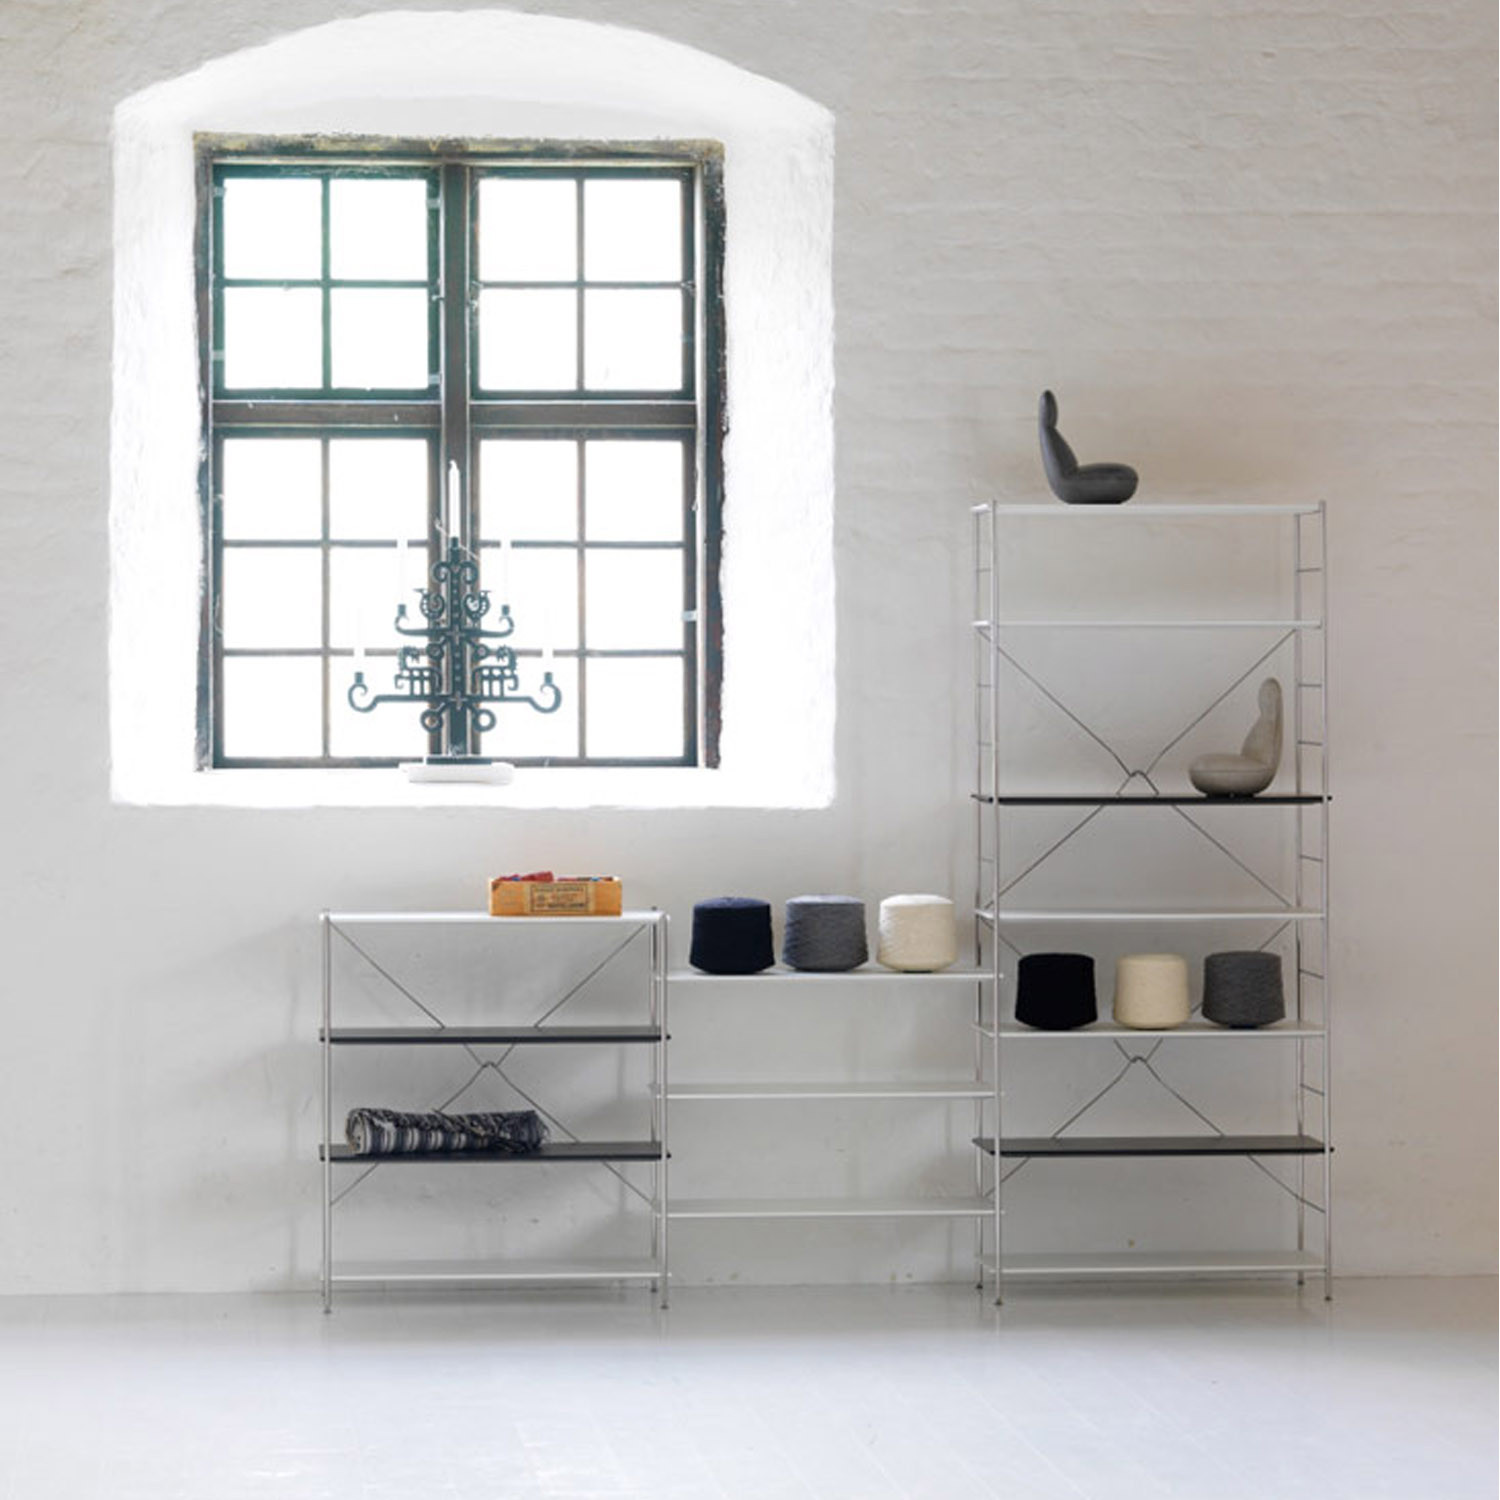 Klim Shelving System A4 by Bla Station